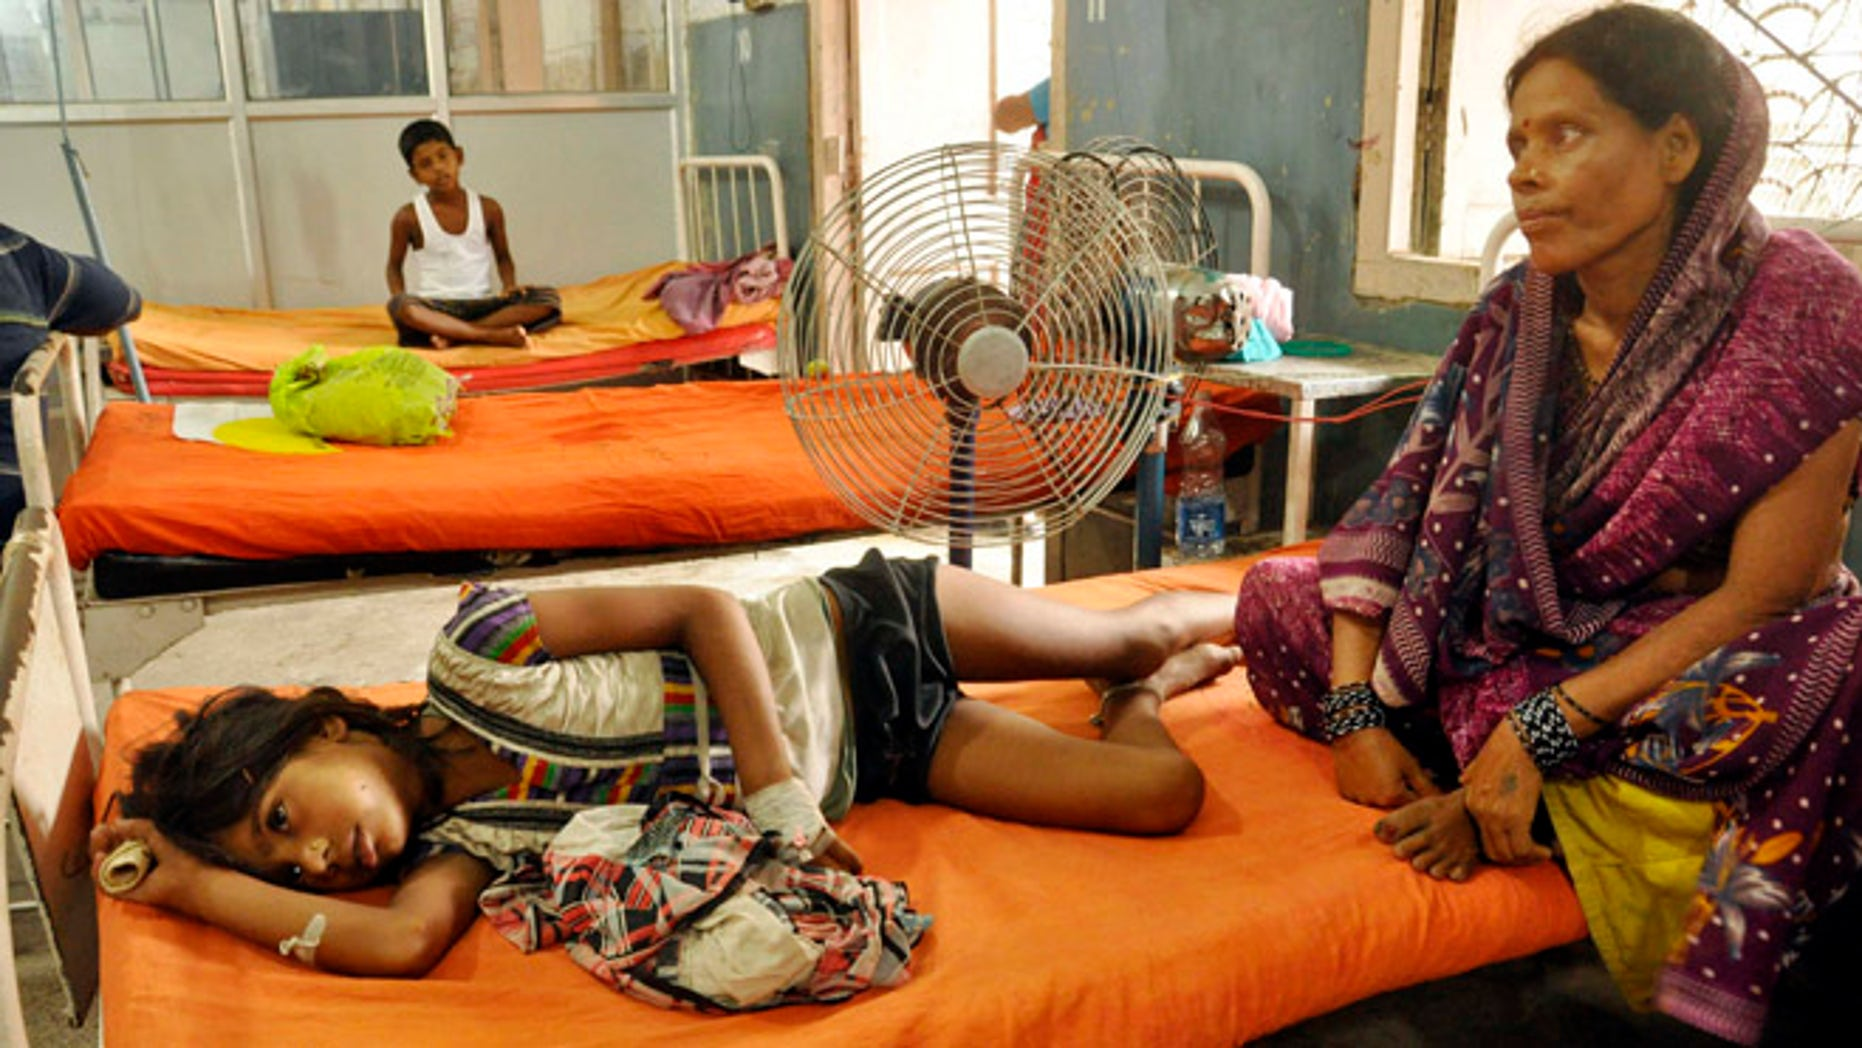 July 18, 2013: An Indian woman sits beside a child who fell sick after eating a free school lunch, at a hospital in Patna, India. Indian officials say at least 22 children have died and more than two dozen others were sickened after eating a free school lunch that was tainted with insecticide.